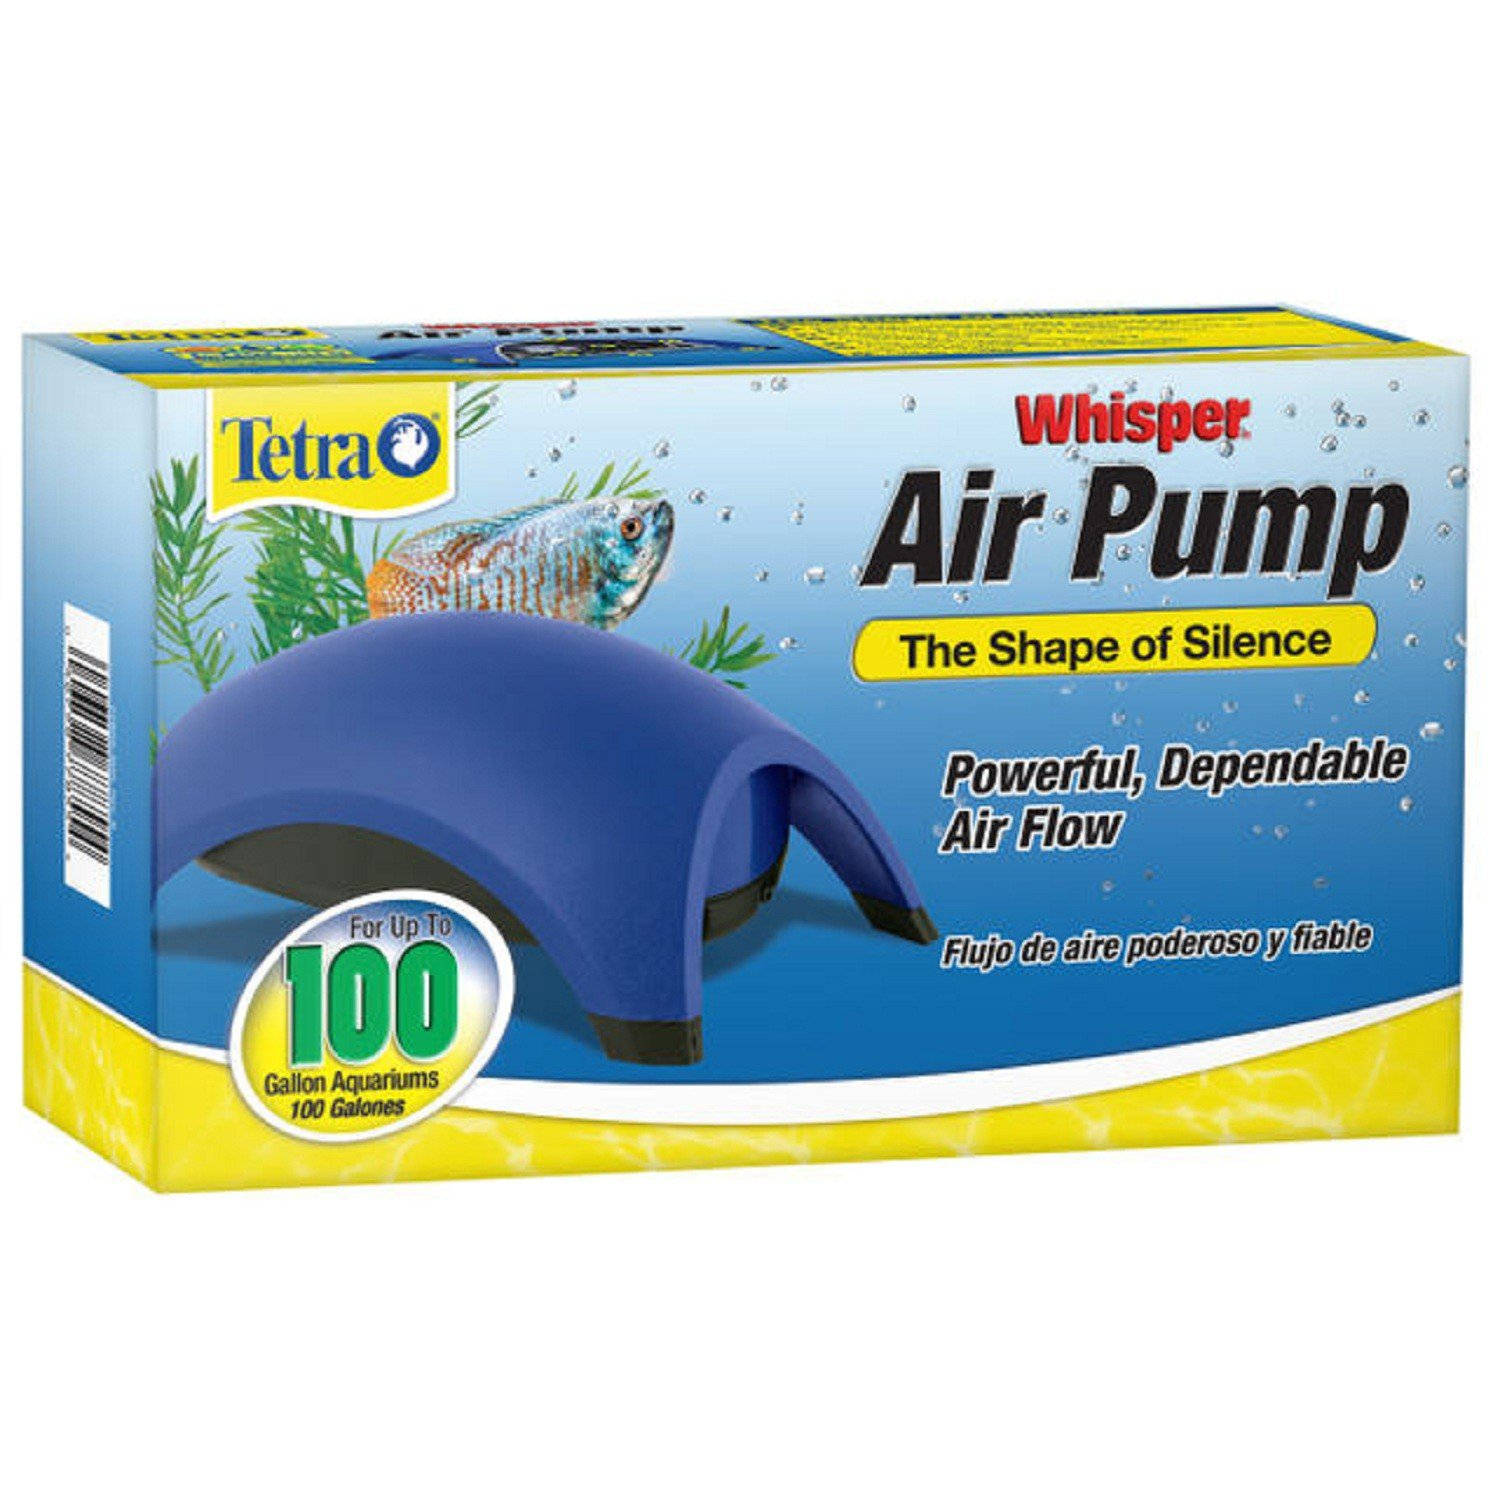 Tetra whisper aquarium air pump for 100 gallon aquariums for Air pump for fish tank